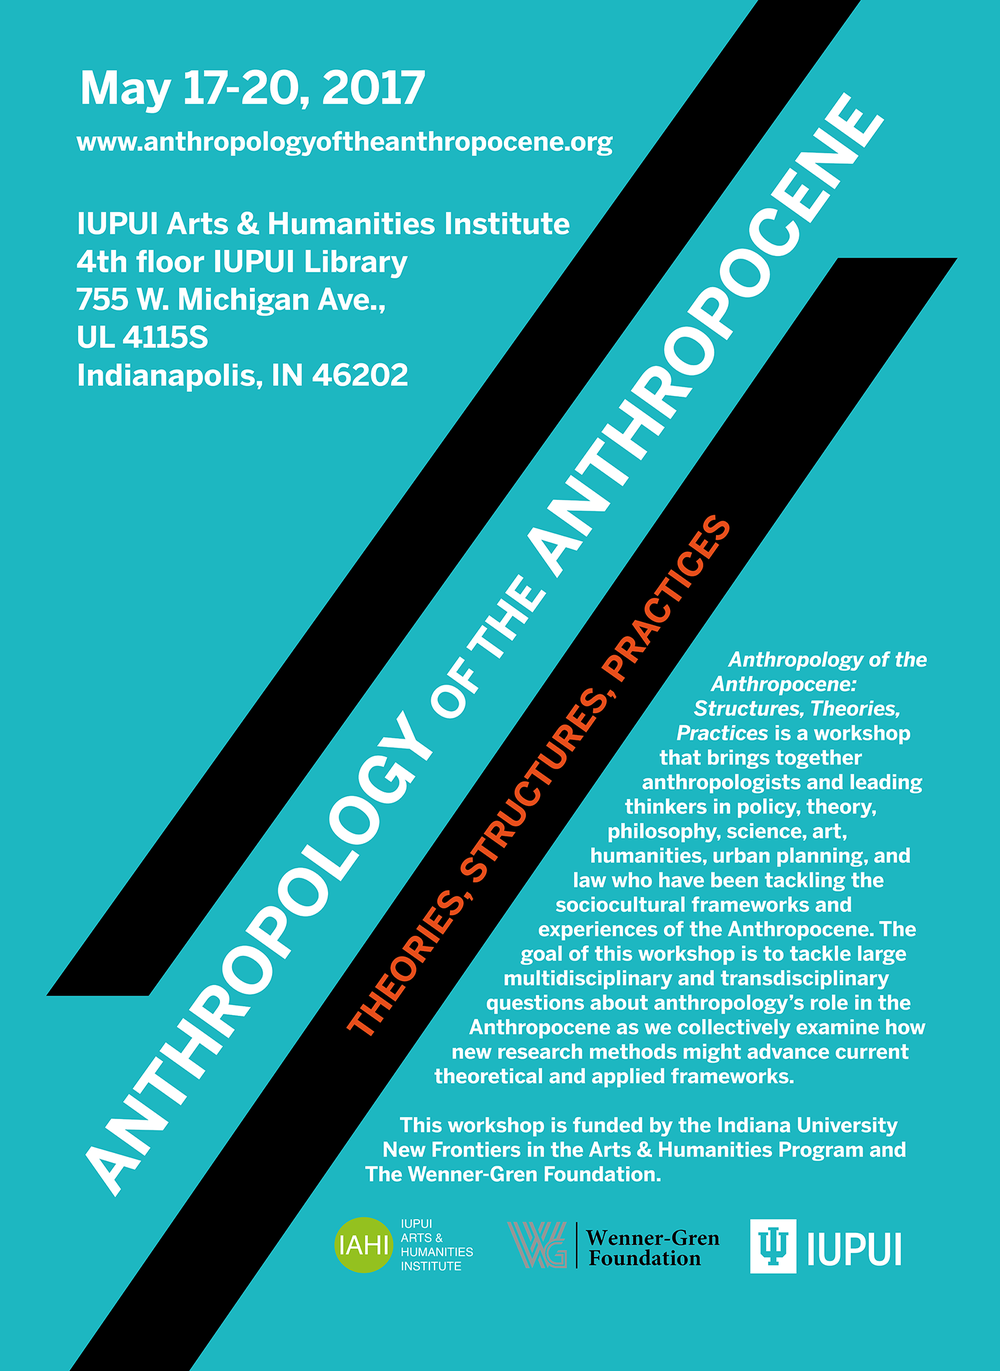 The Anthropology of the Anthropocene Workshop is Almost Here — Jason